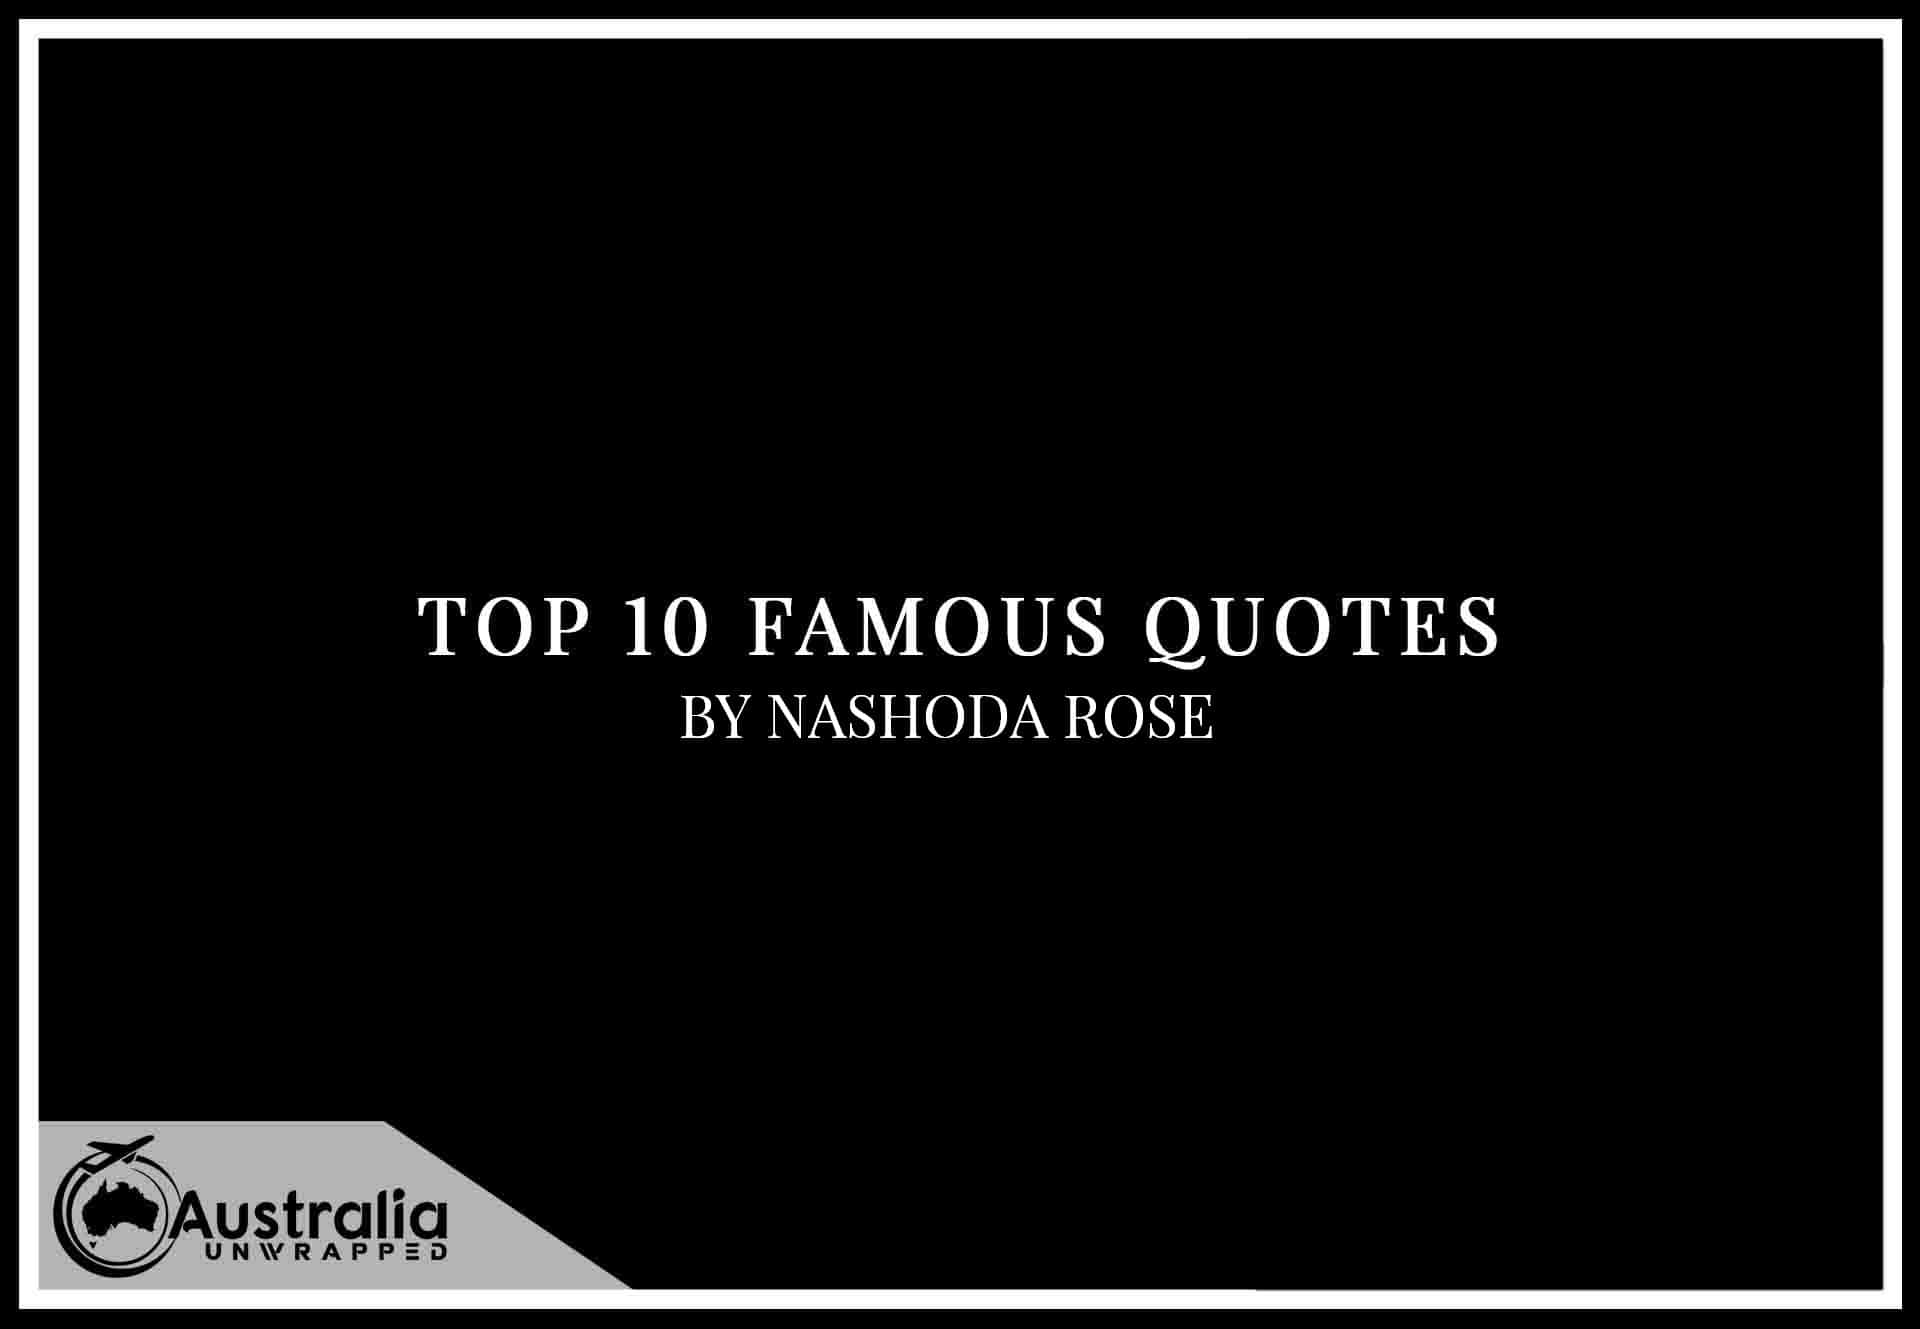 Top 10 Famous Quotes by Author Nashoda Rose